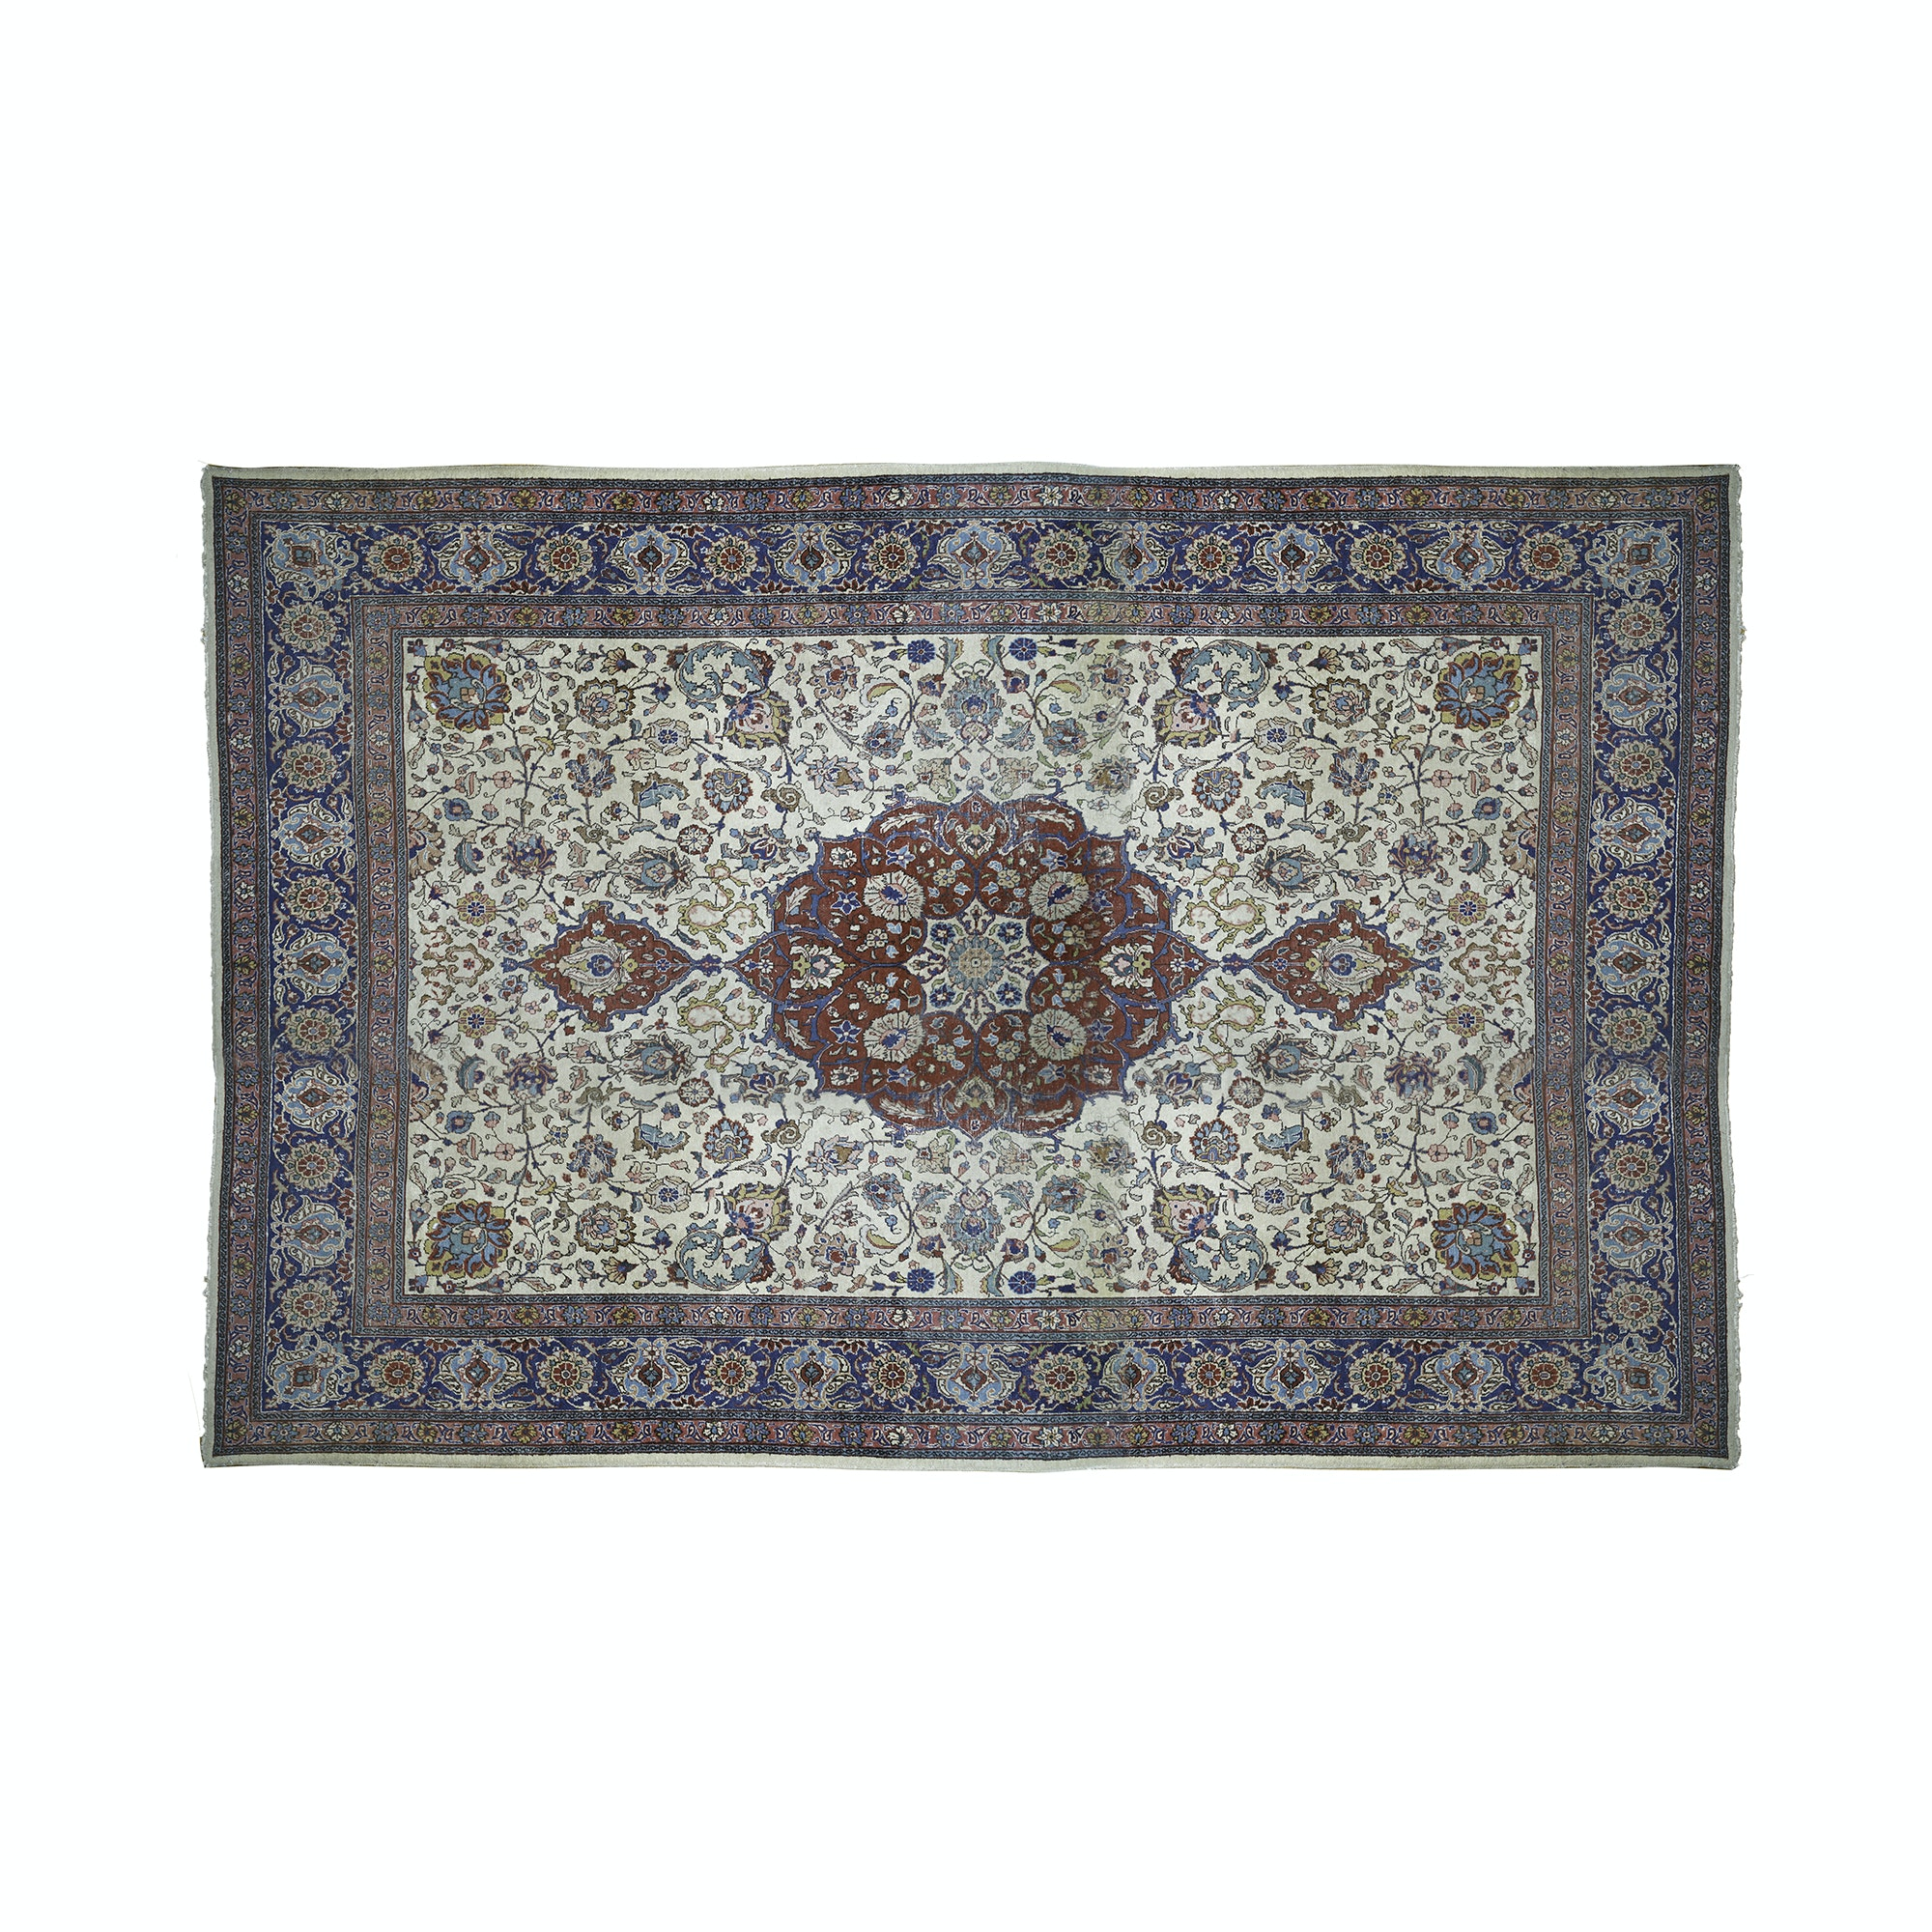 Semi-Antique Hand-Knotted Qum Wool Room Sized Rug